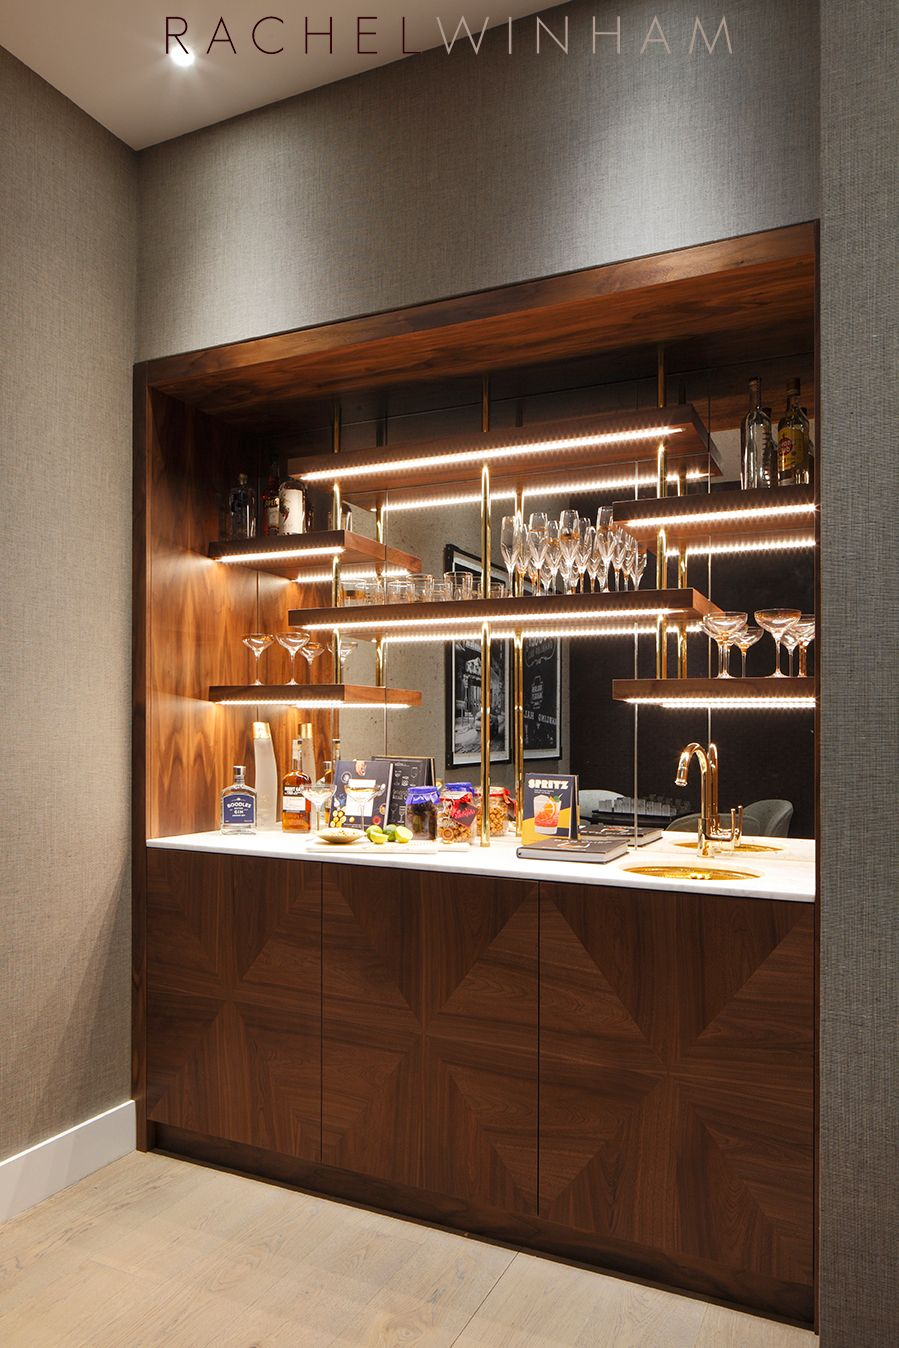 Bar Rachel Winham Interior Design Bars and Hutches en